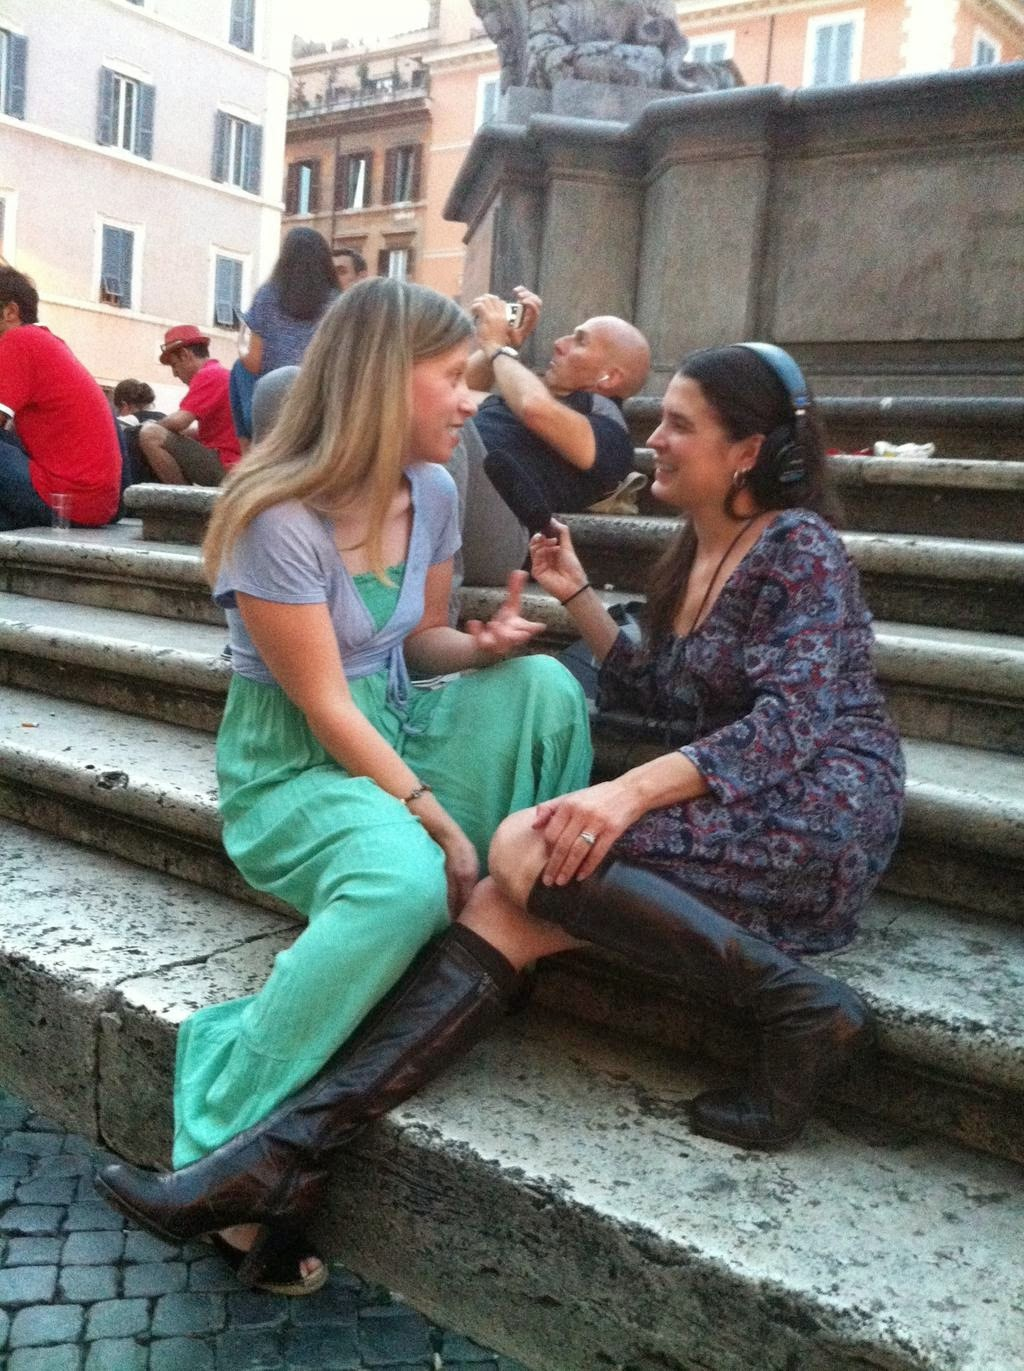 Recording an episode of  The BitterSweet Life  with Katy Sewall in Piazza Santa Maria in Trastevere